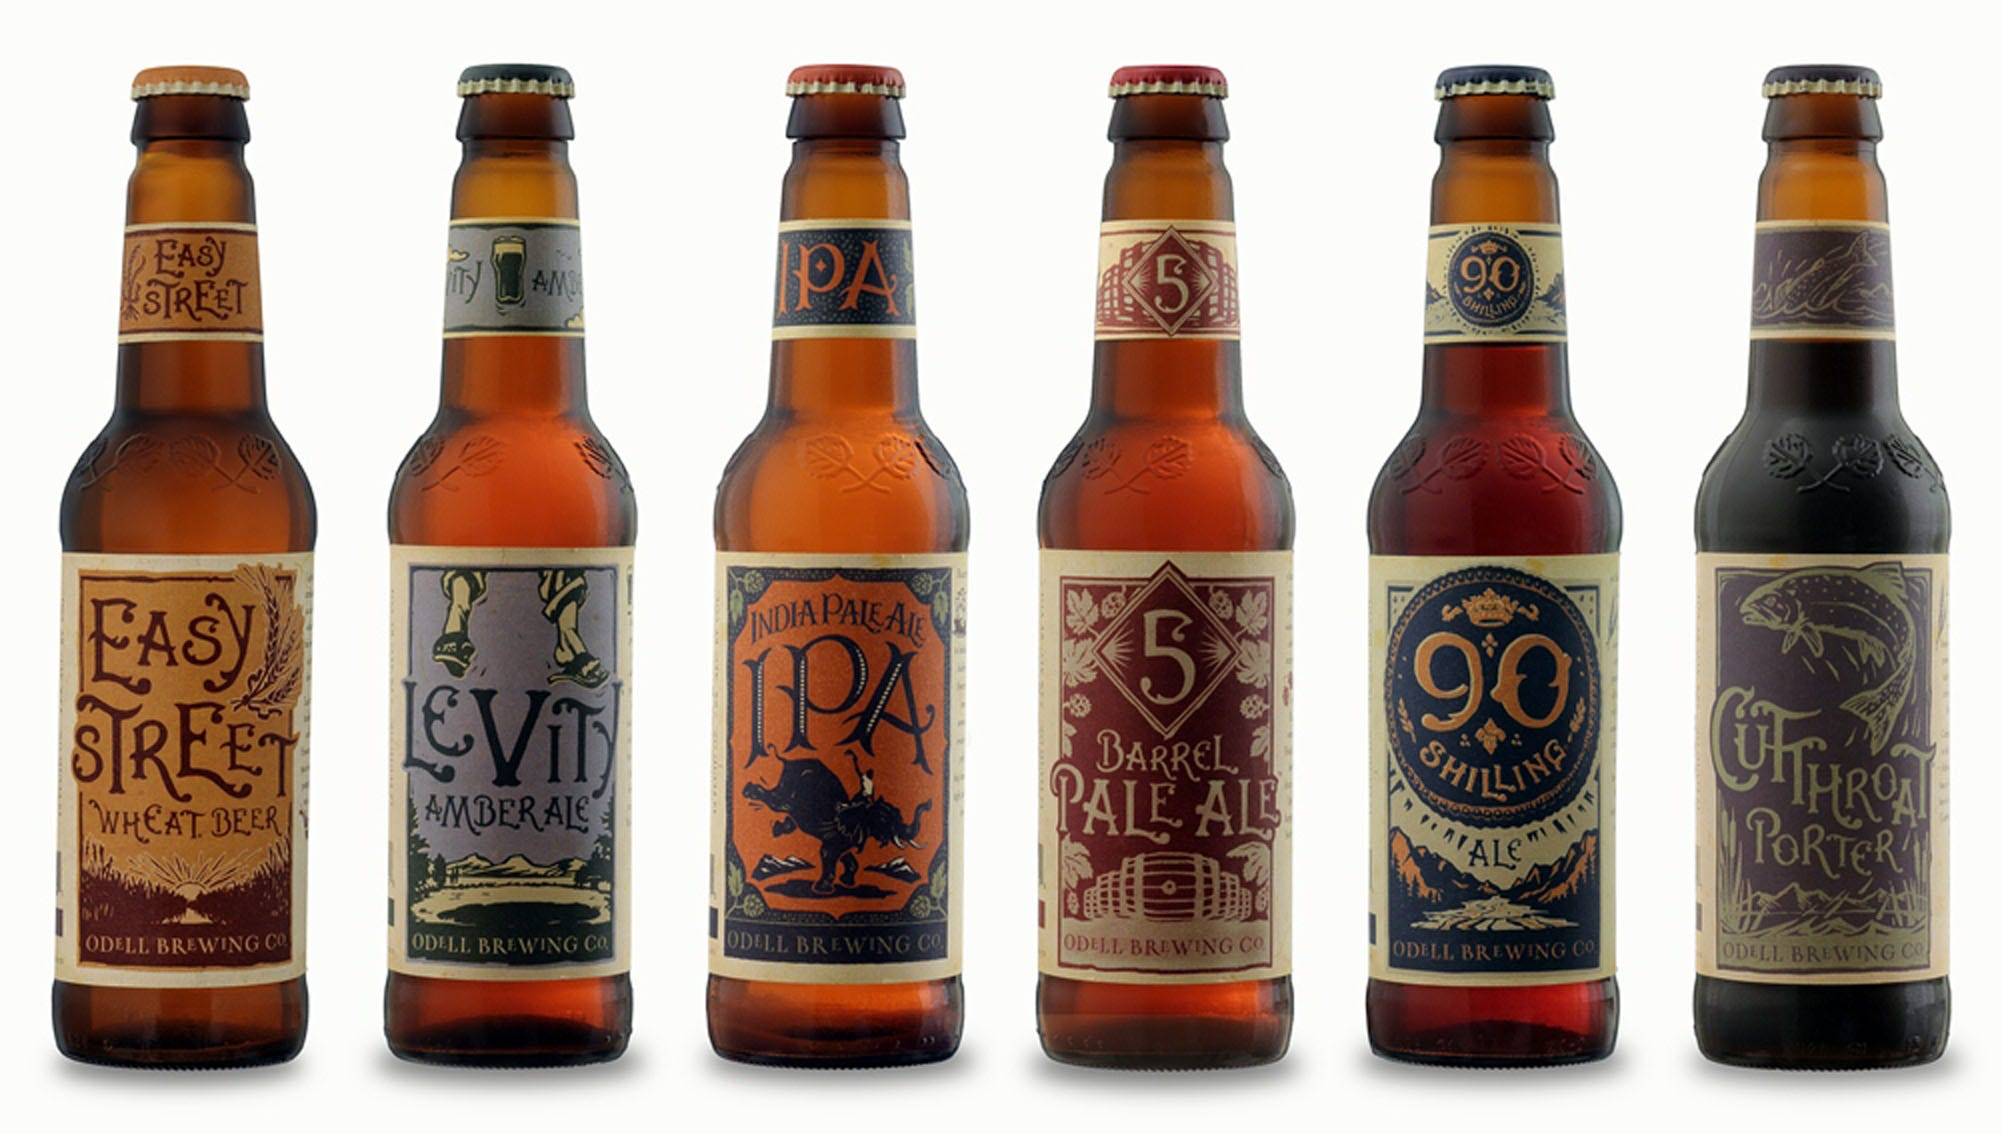 """Odell Brewing Company, Fort Collins, Colo.: More than two decades ago, this Odell family of """"beer-centric"""" people began a craft brewery north of Denver. Sure, there might be another Fort Collins, Colo., brewery that gets more attention (look further down our list to find out who), but Odell is the darling of the Colorado brew scene. """"While another larger brewery in Fort Collins gets most of the notice, Odell chugs along making some spectacularly delicious beers,"""" says Mike Sweeney of St. Louis Hops. """"Odell IPA puts a lot of West Coast breweries to shame with a perfect balance of hops and malt and then they double the effort with Myrcenary. They also try and push the boundaries of beer with their Cellar and Woodcut series and even when Odell tries and fails, you have to appreciate the effort."""" Today, the brewery has completed its fourth expansion and sponsors charities through its Odell Outreach."""